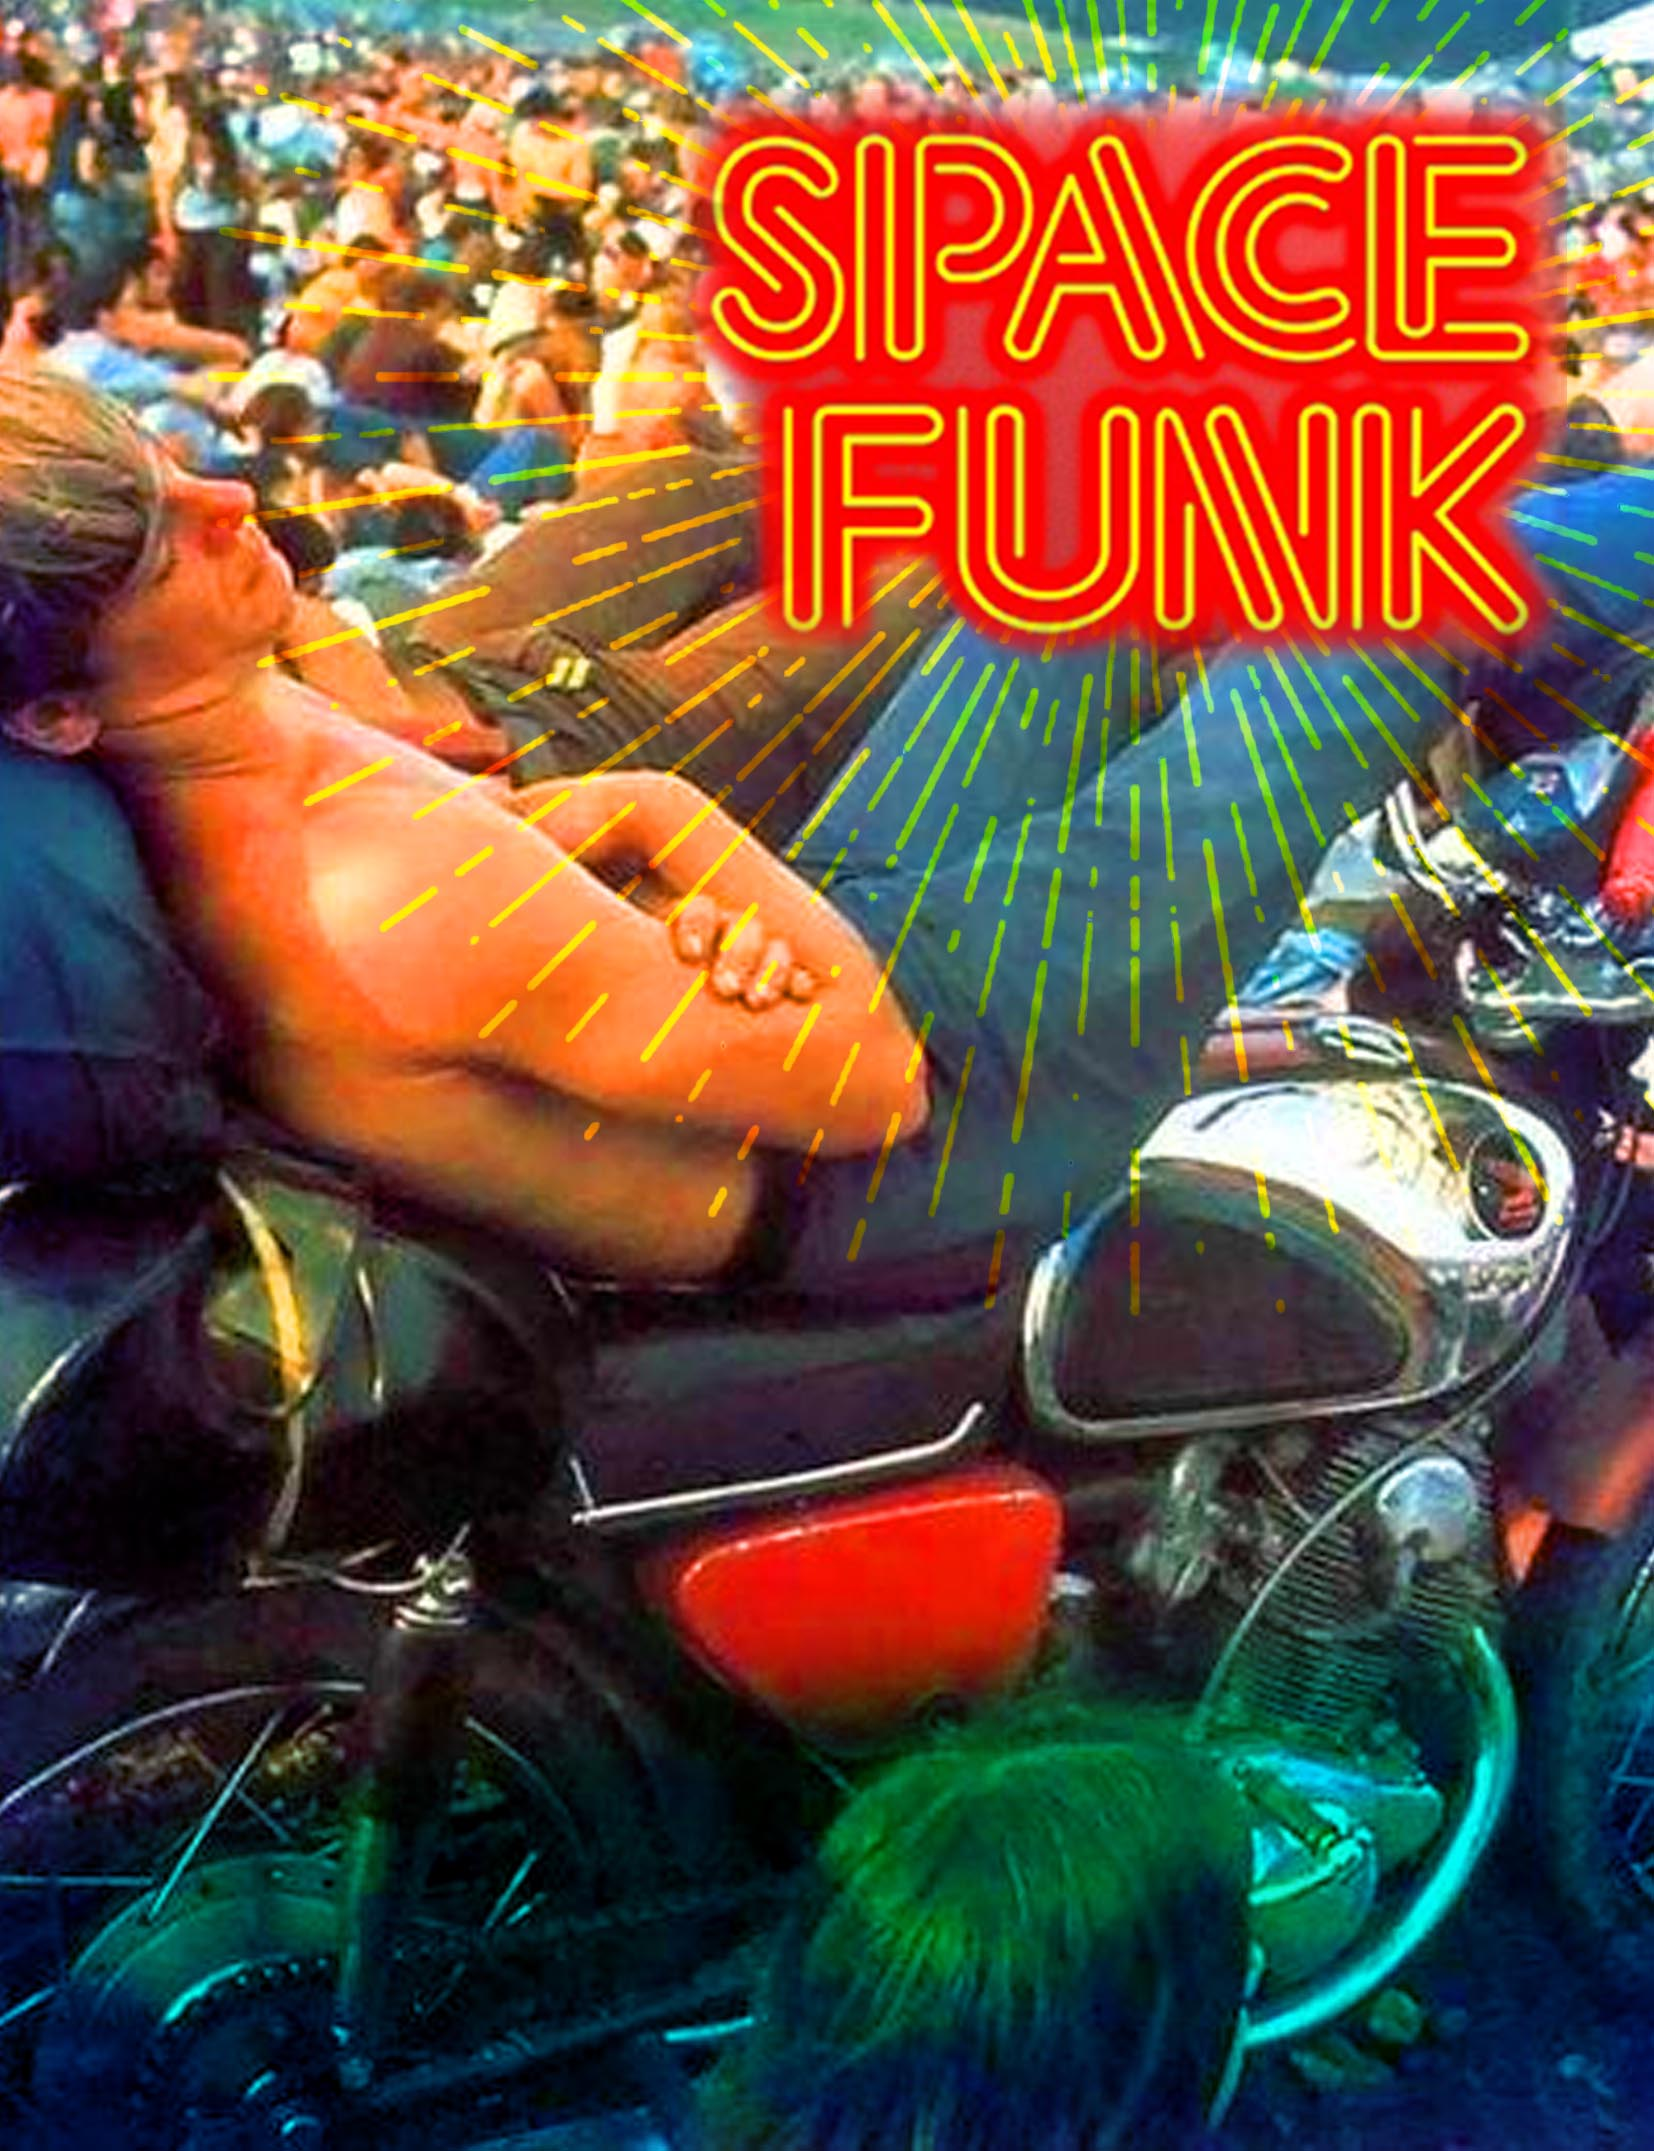 SPACE FUNK! FROM THE HUNTER RIVER TO HALIFAX